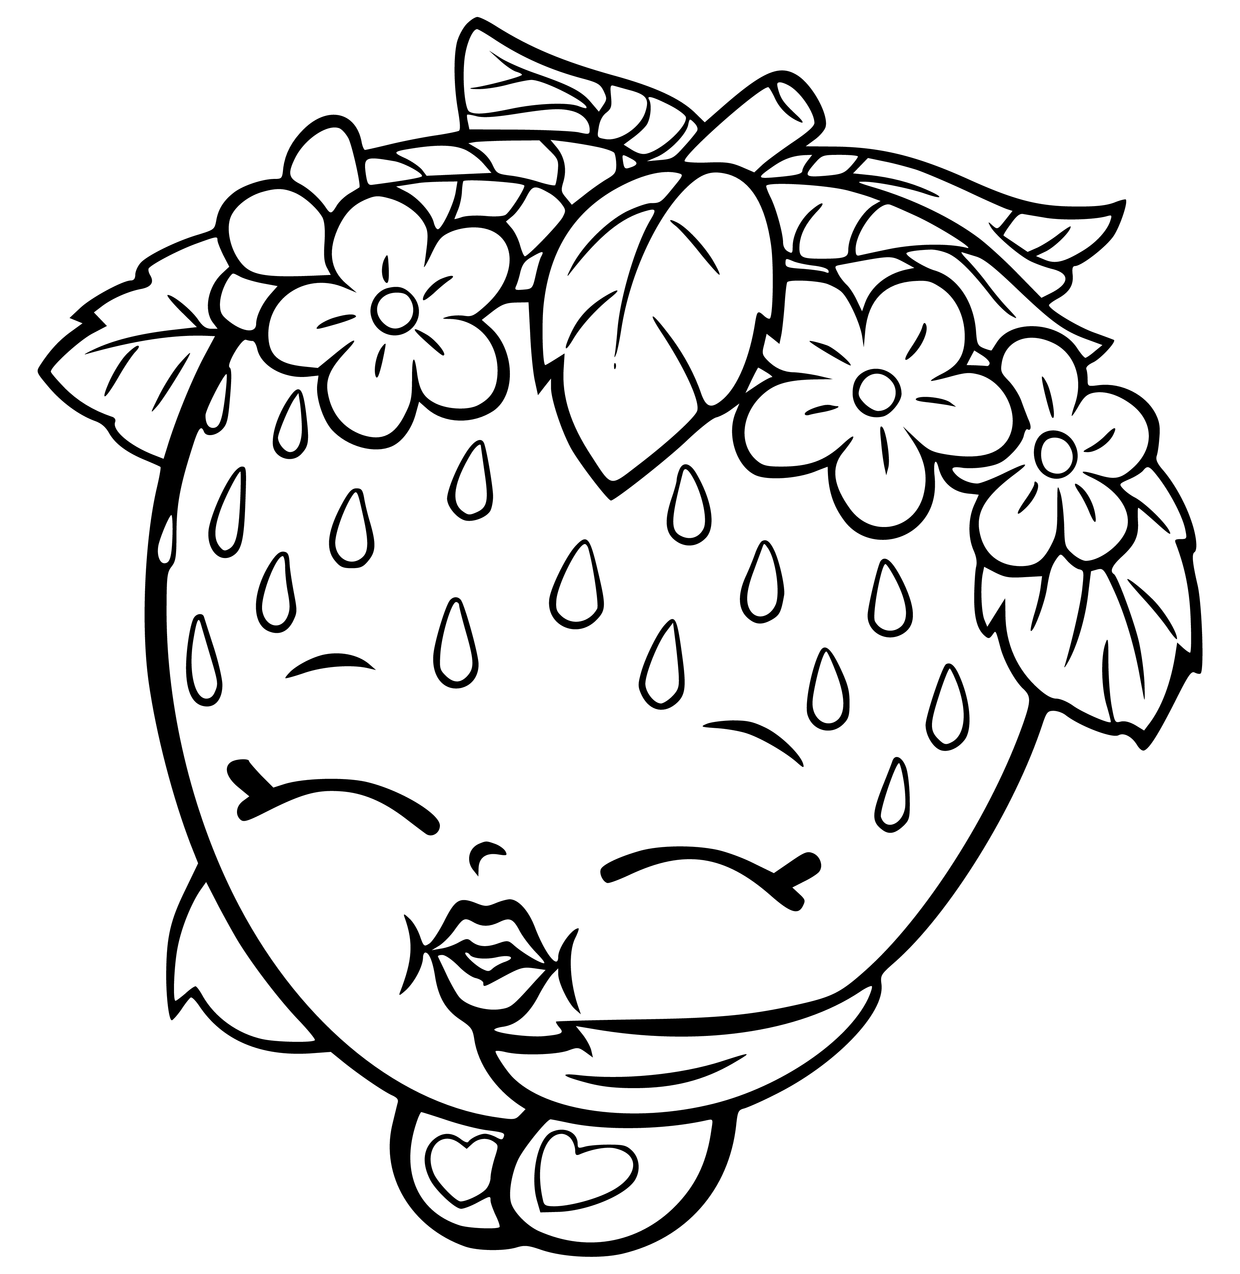 shopkins coloring pages to print free shopkins coloring pages best coloring pages for kids free shopkins pages coloring to print